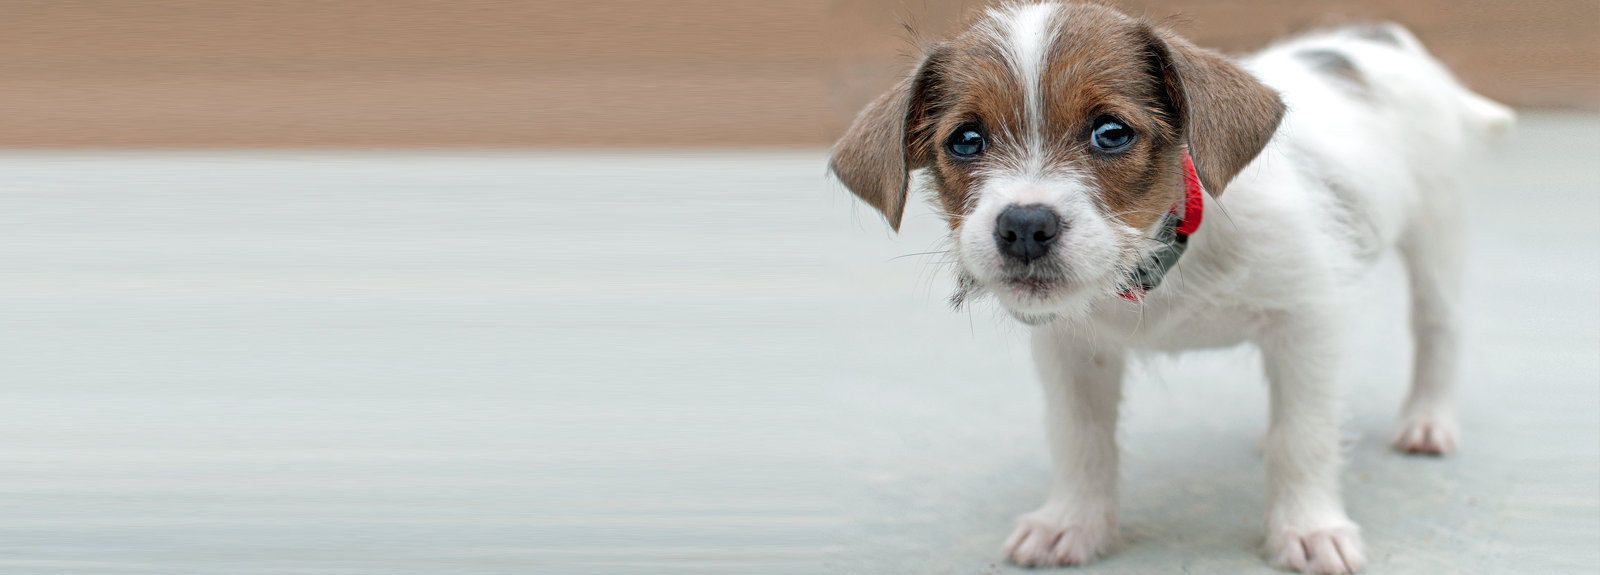 Alternatives to Surrendering - SPCA for Monterey County